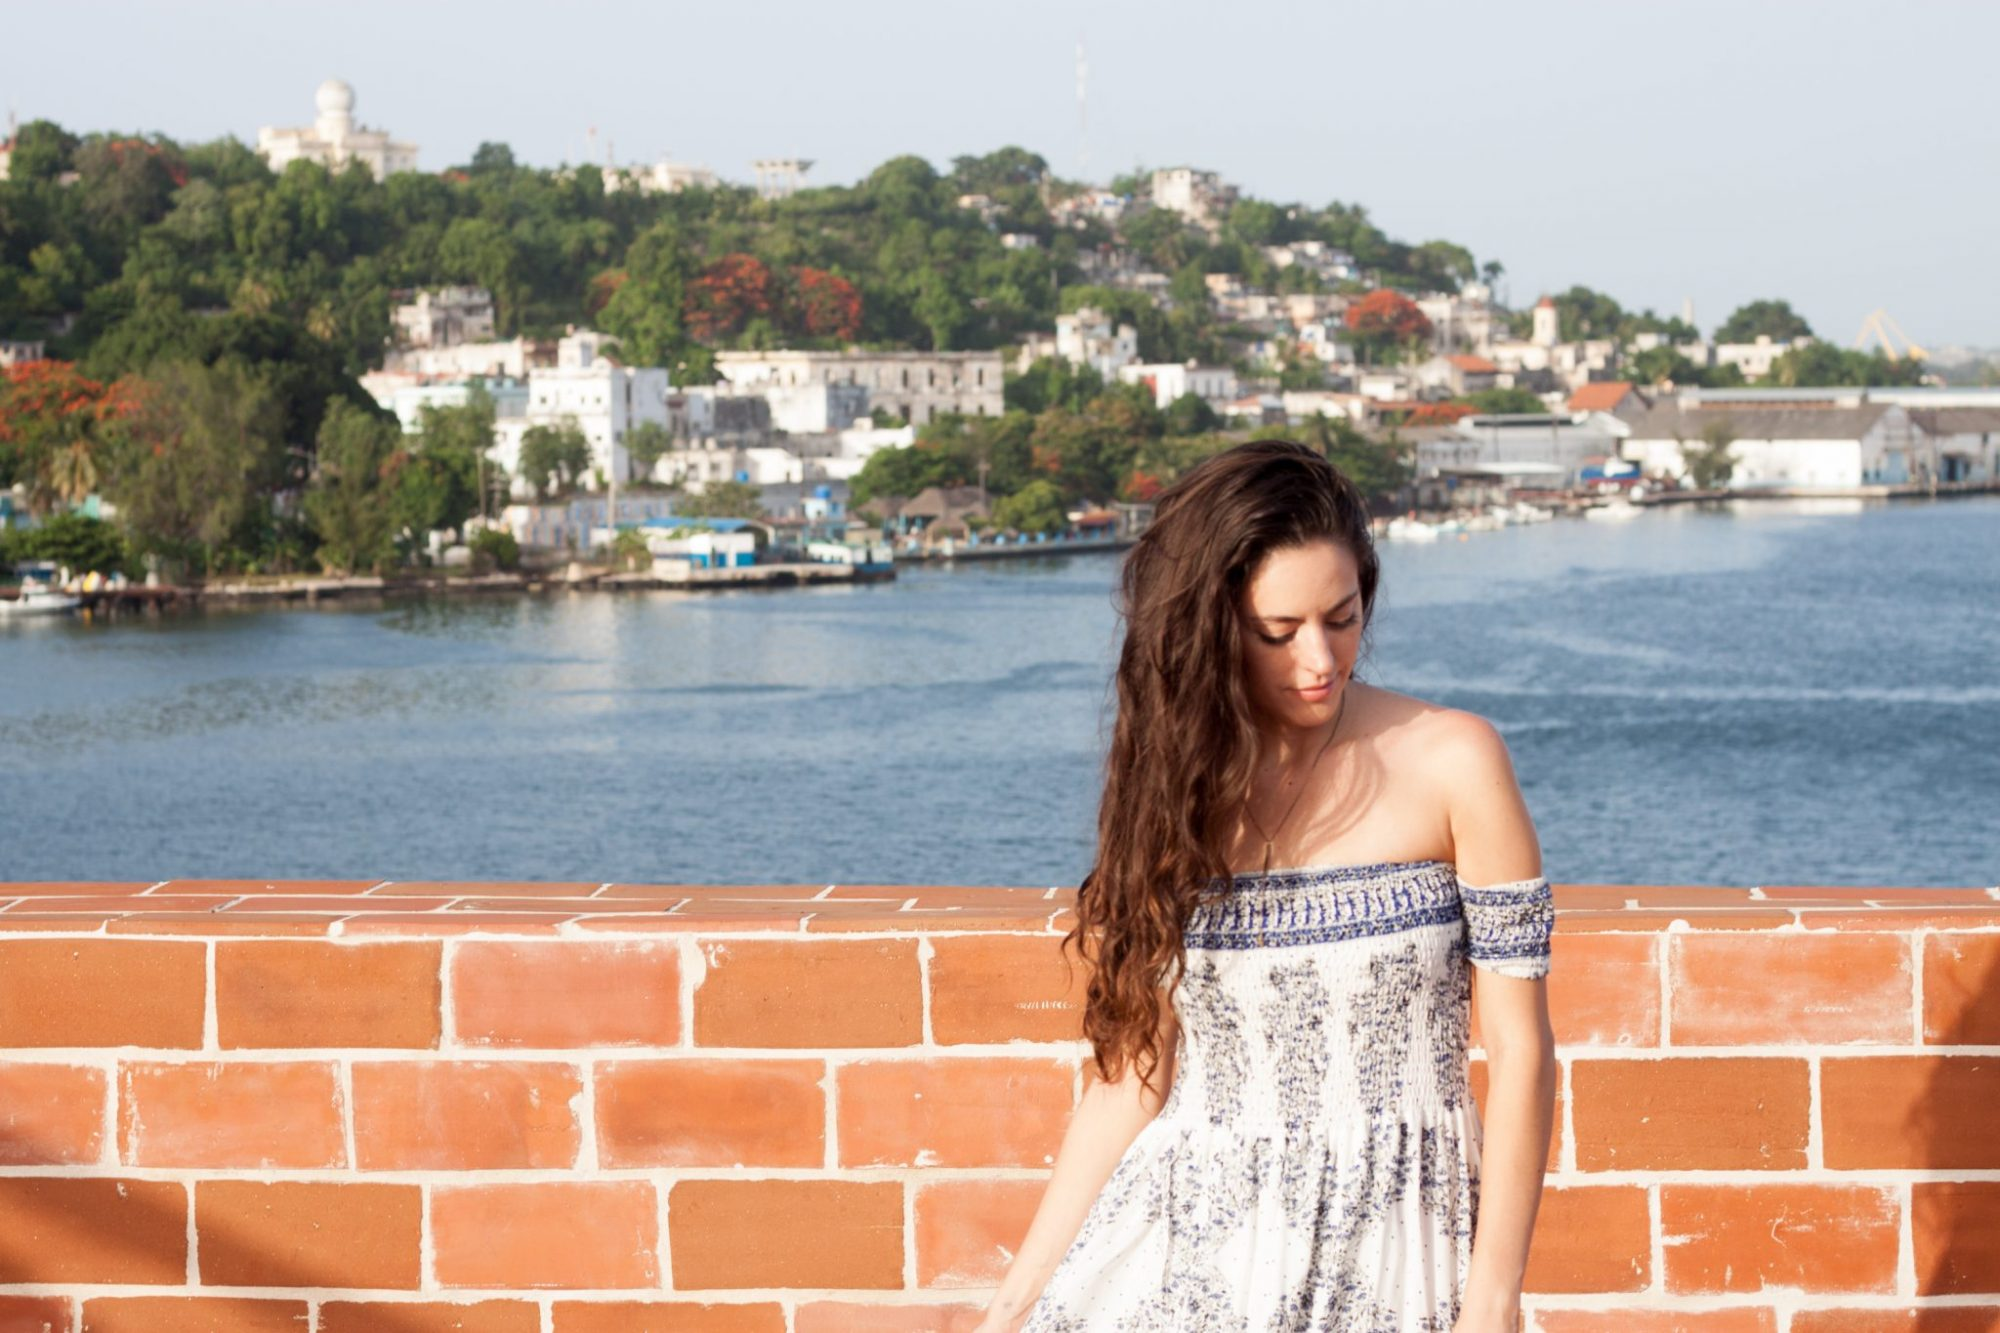 where to stay in havana, where to stay in cuba, airbnb in cuba, airbnb in havana, cuba, havana, blue and white maxi dress, american threads Reverse Allegra Off Shoulder Maxi Dress, cocktail hour, rooftop terrace in havana cuba,